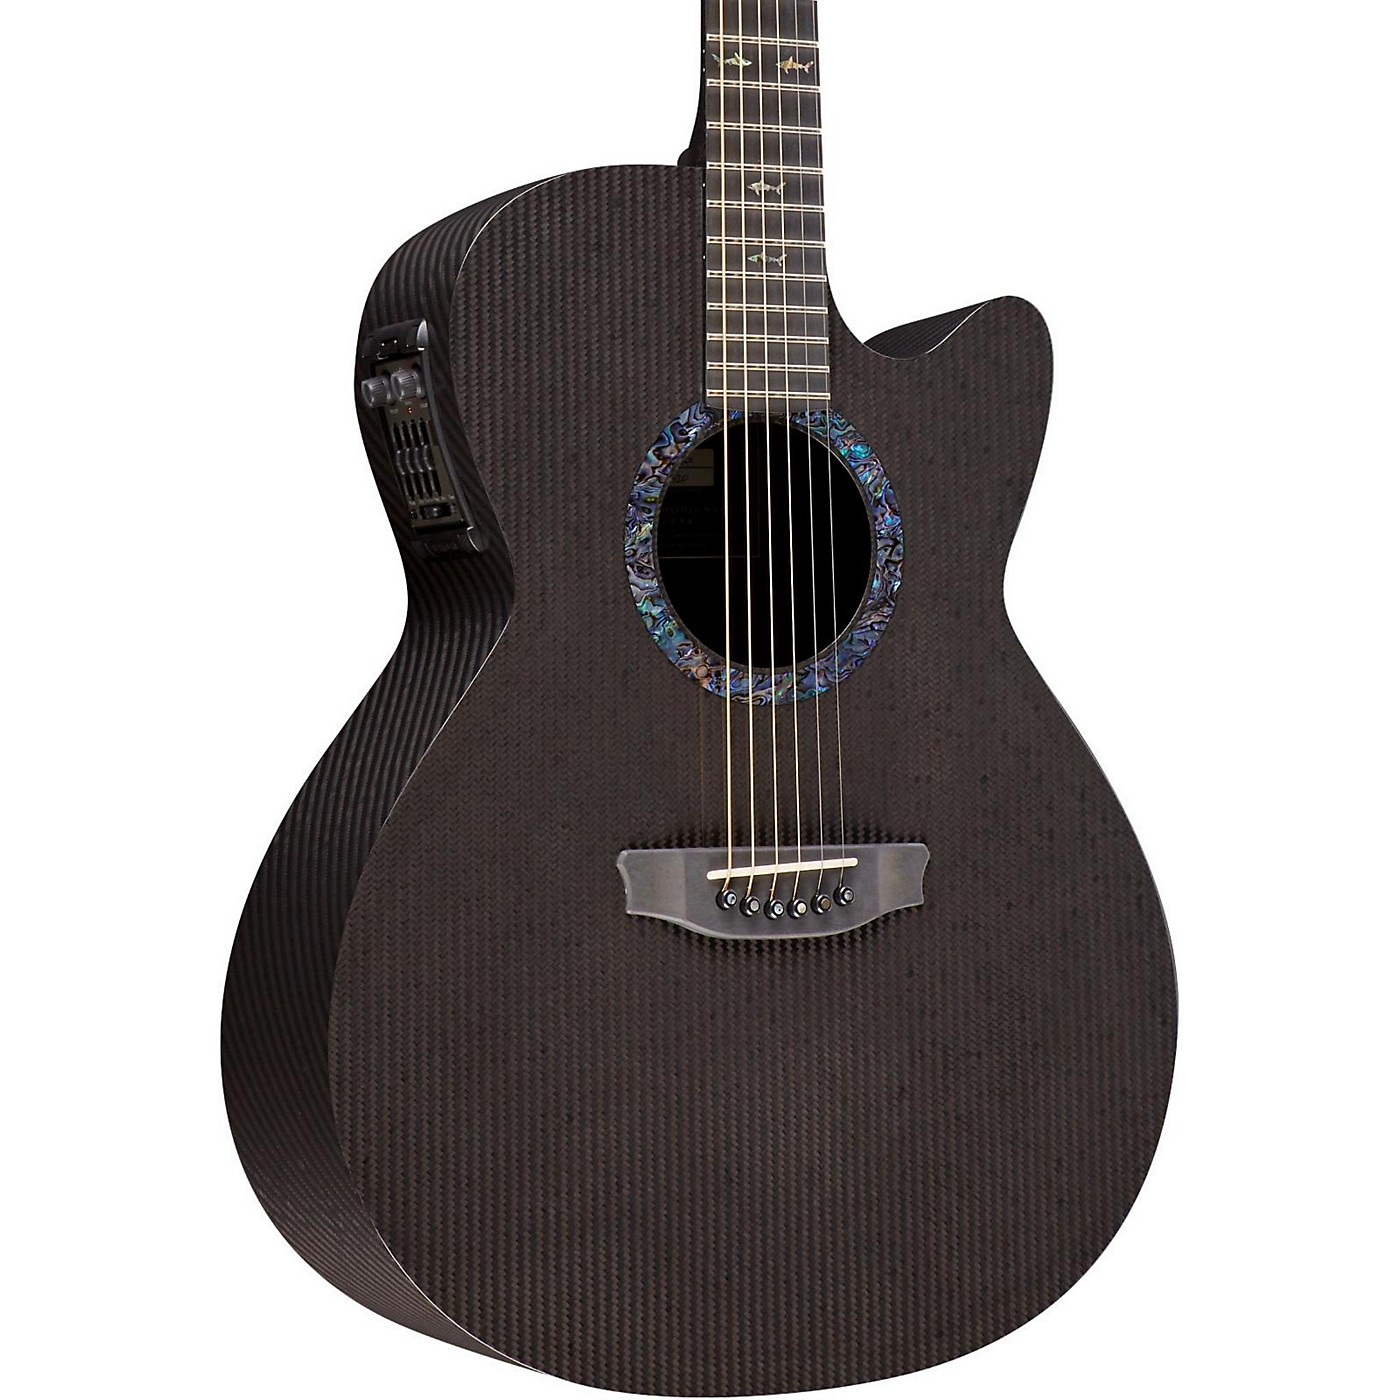 RainSong Classic Series WS1000N2 Acoustic-Electric Guitar thumbnail